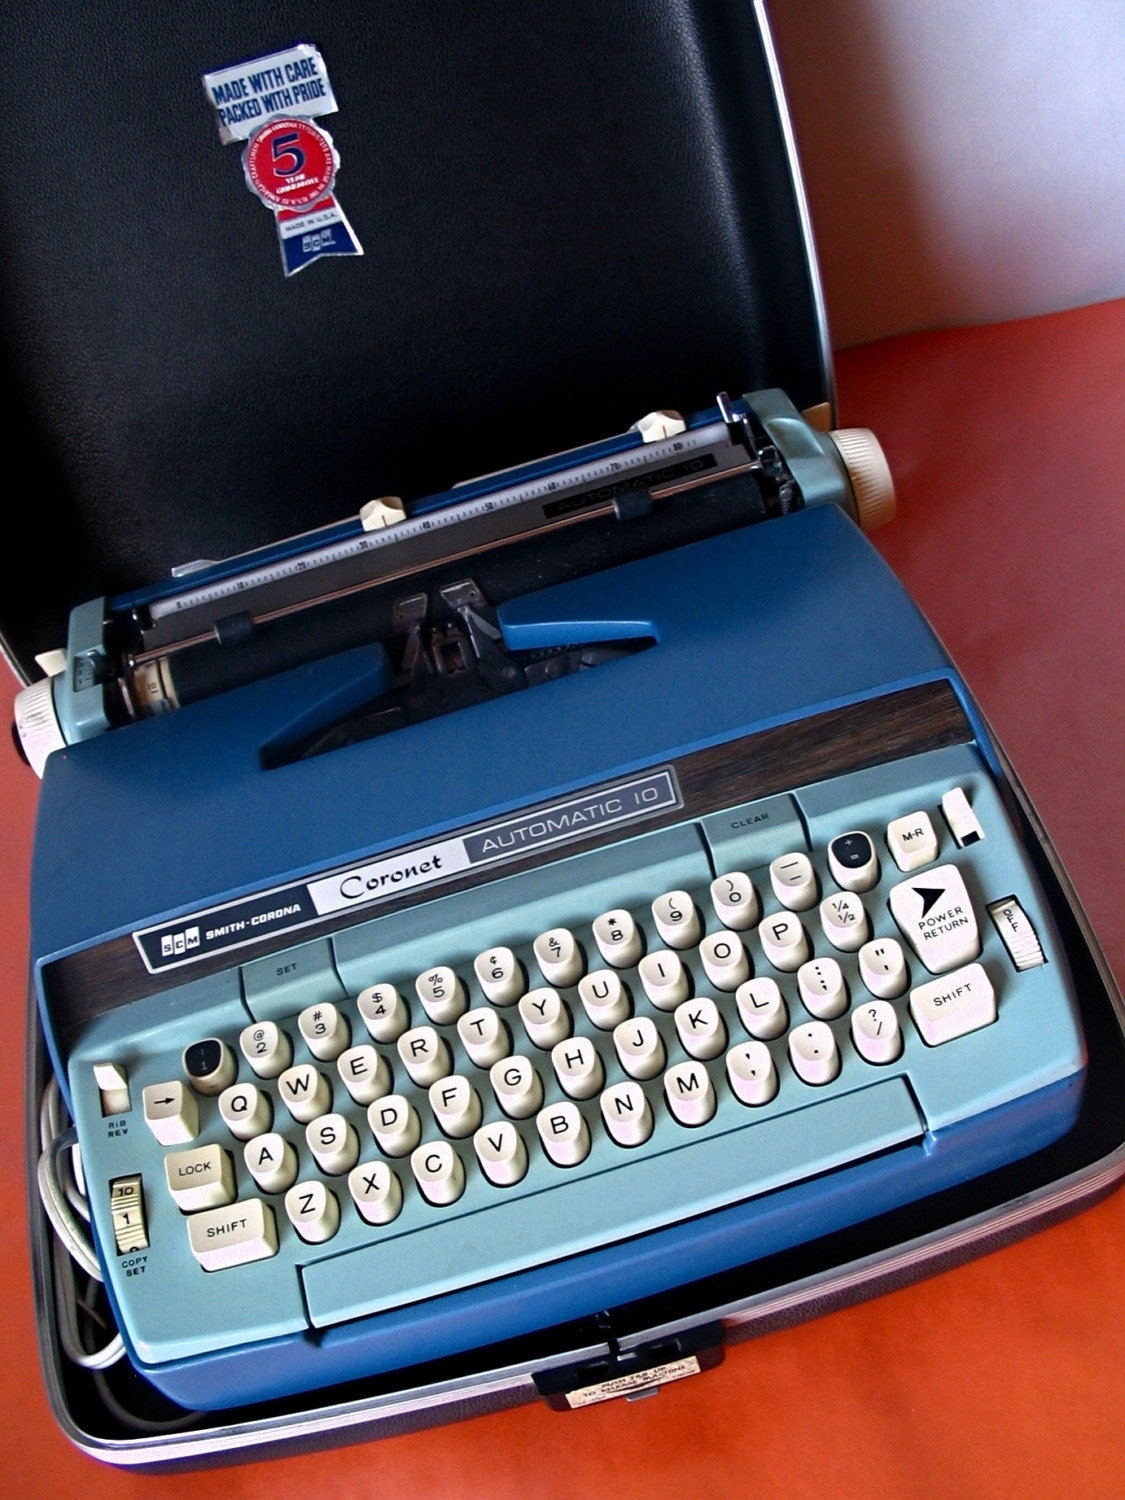 Smith Corona Coronet Automatic 10 Blue Electric Typewriter